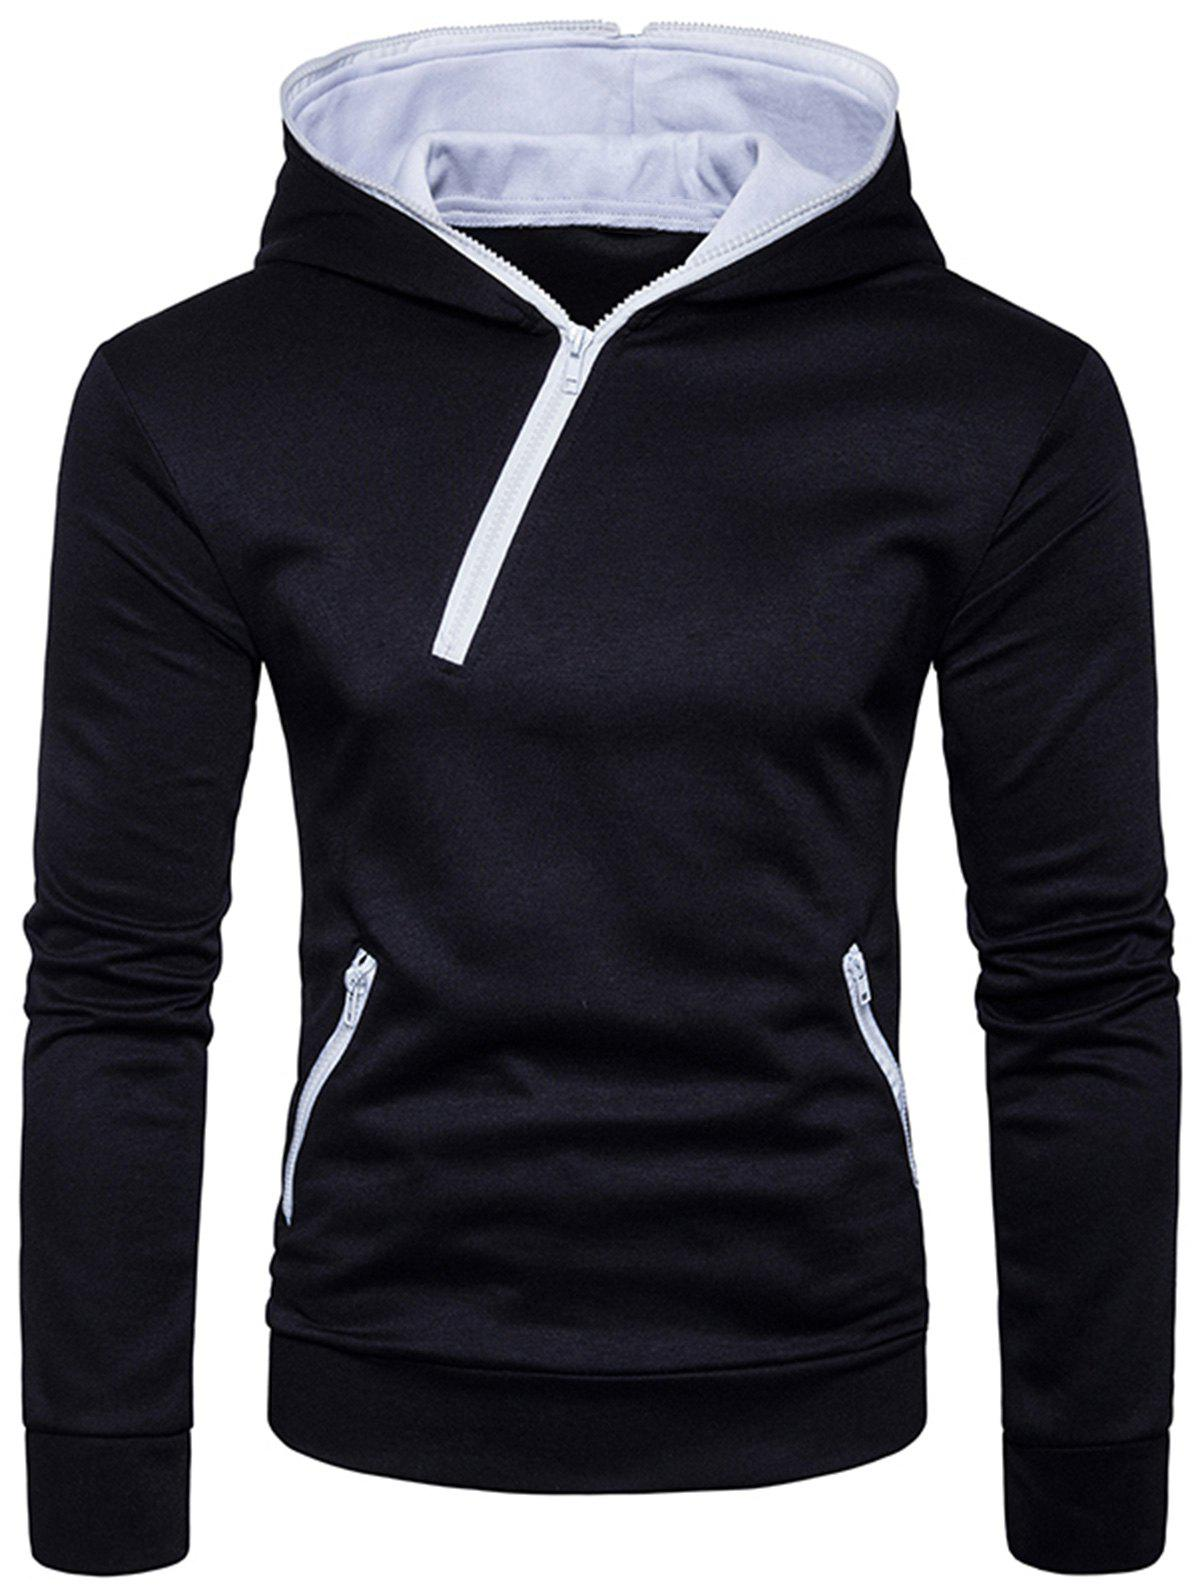 Zipper Design Hooded Sweat à capuche - Noir M